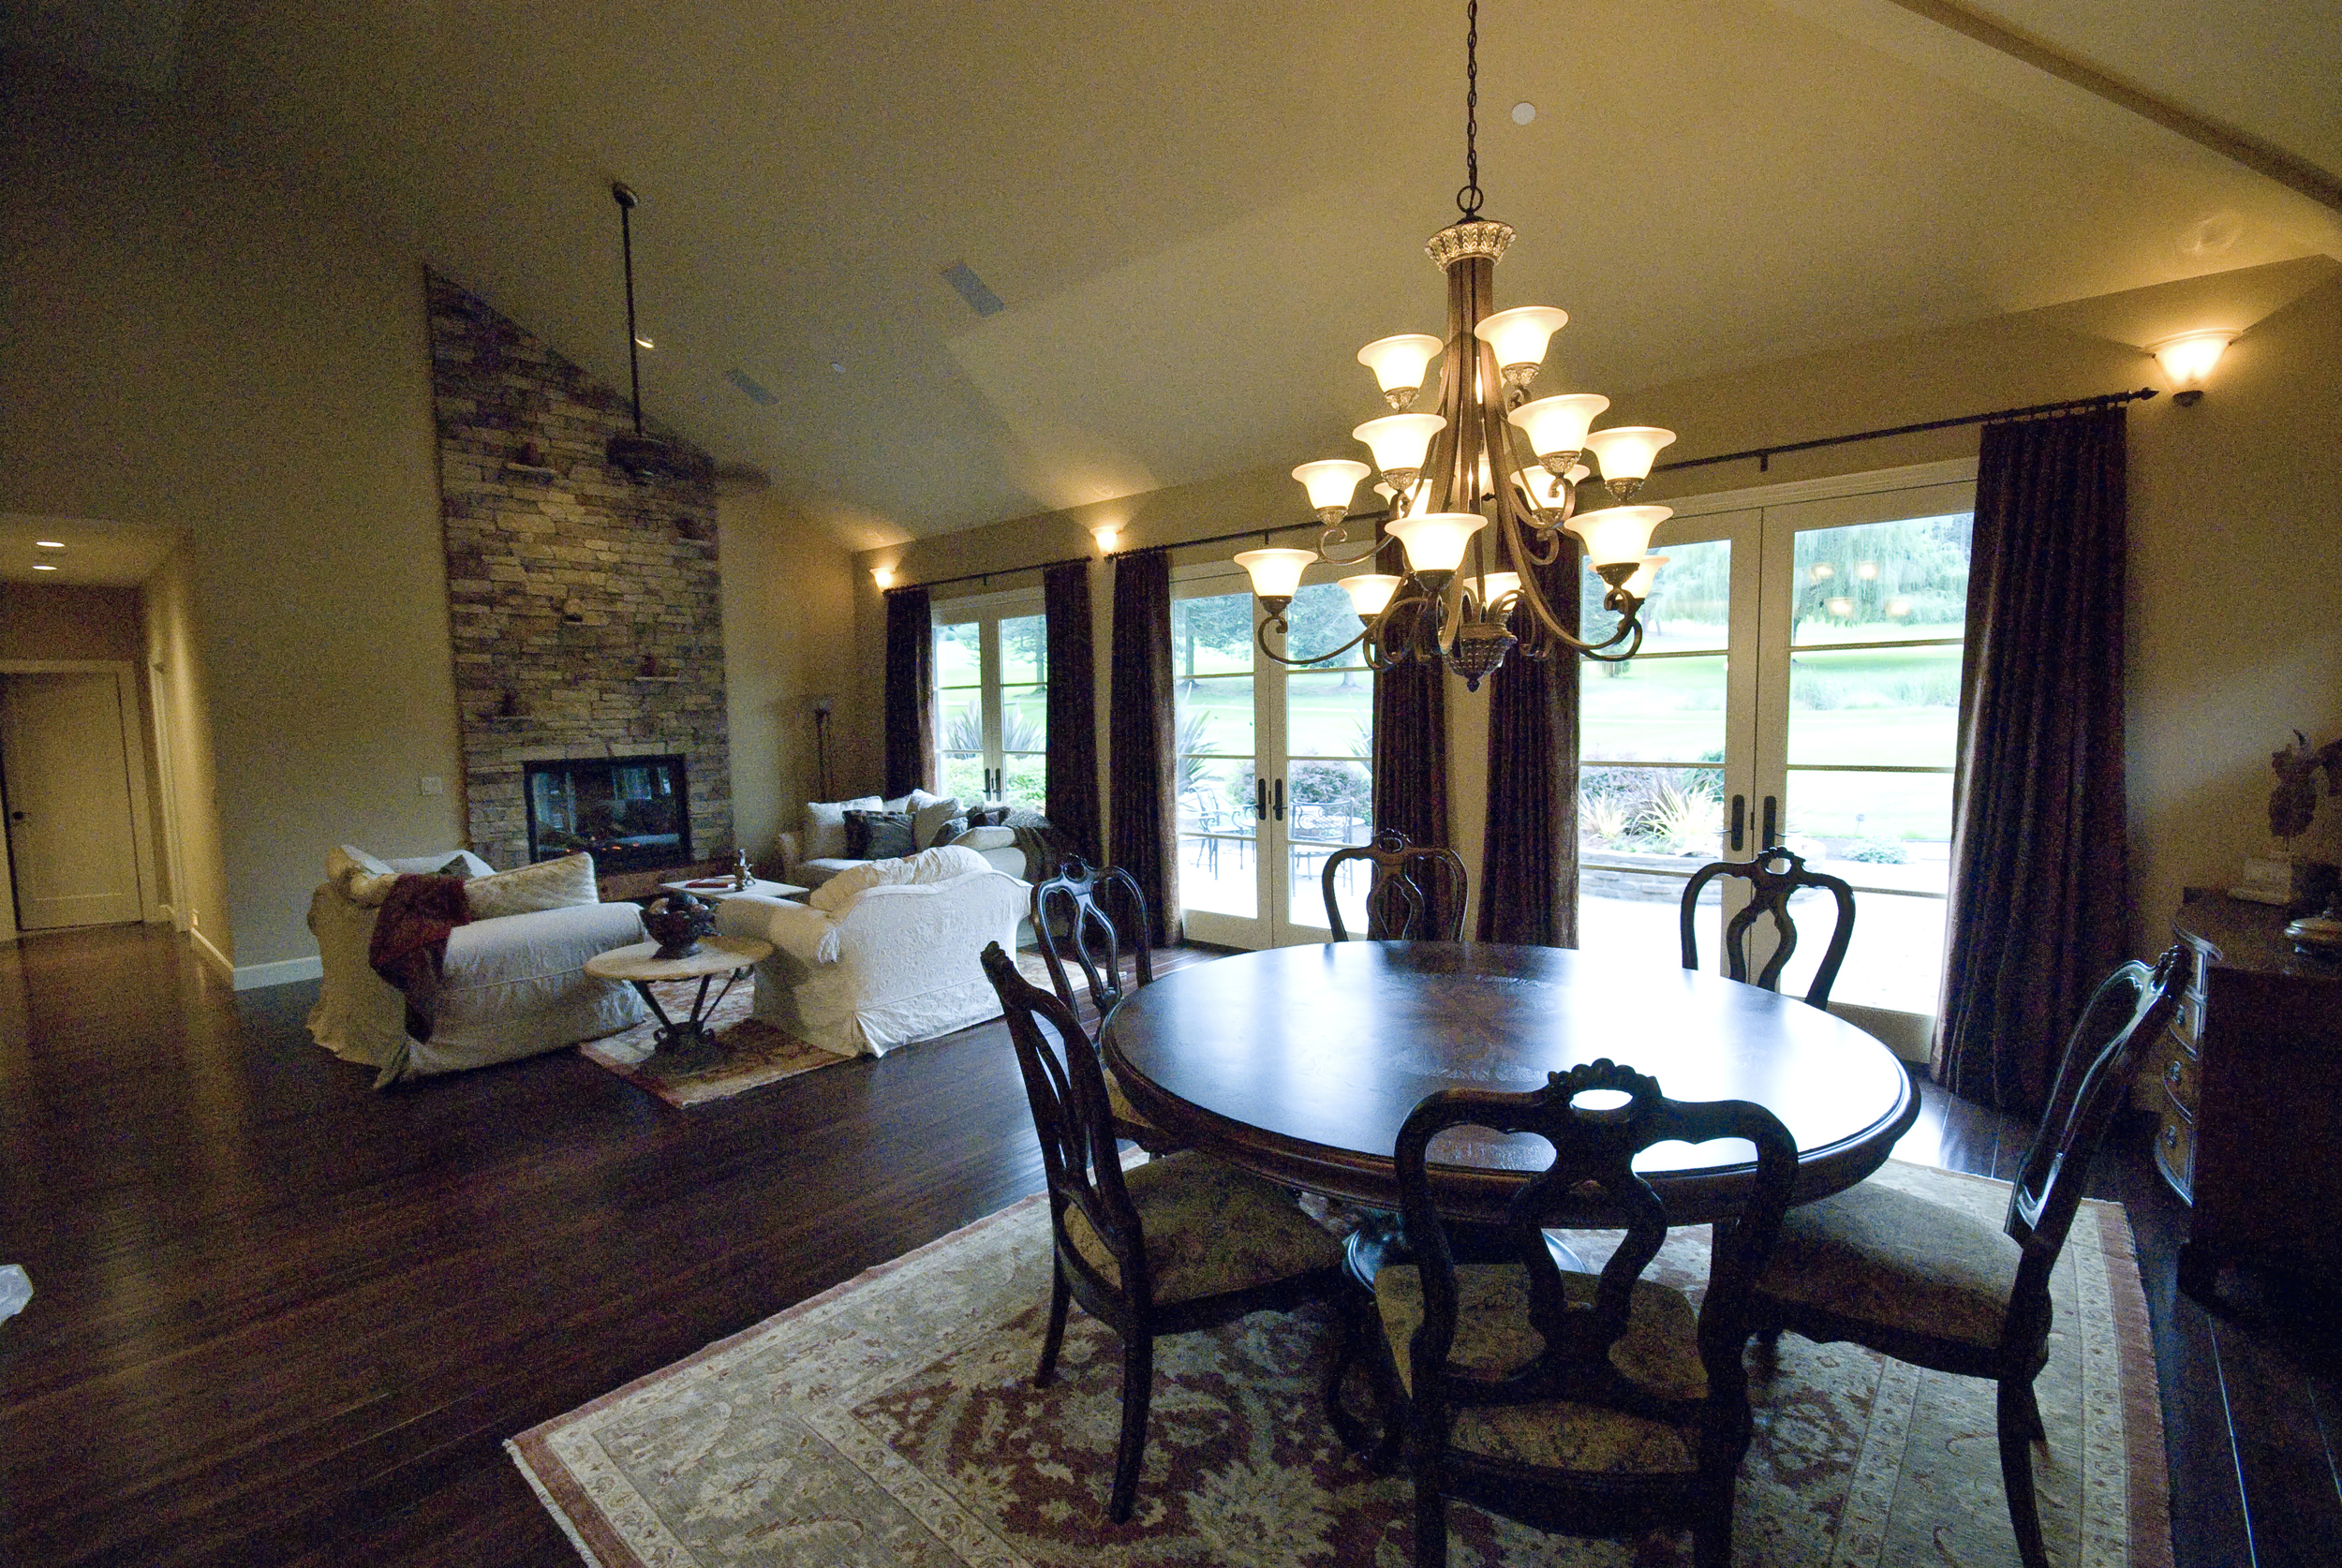 The dining room is great for entertaining and has a fabulous view of the golf course.